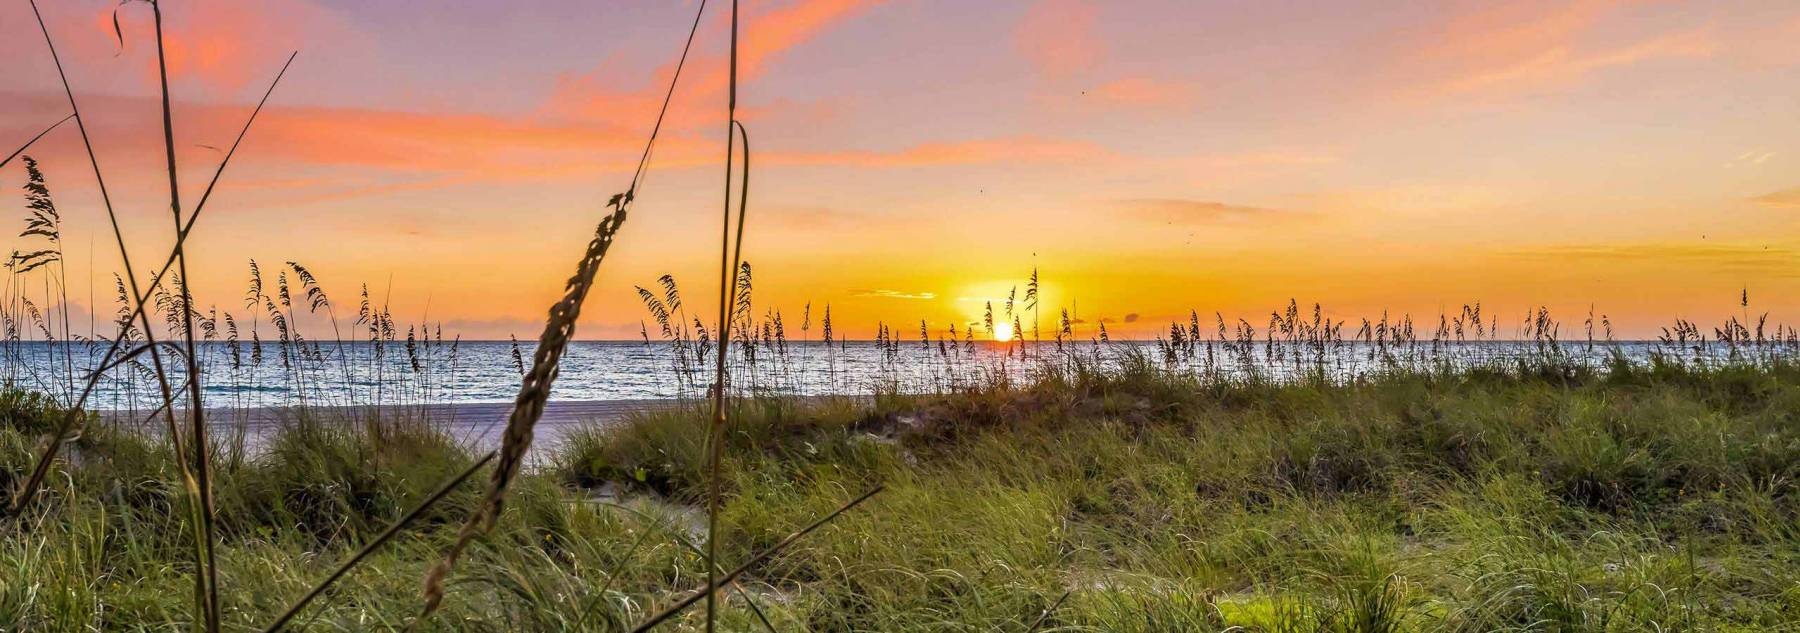 holmes-beach-vacation-rental-anna-maria-island